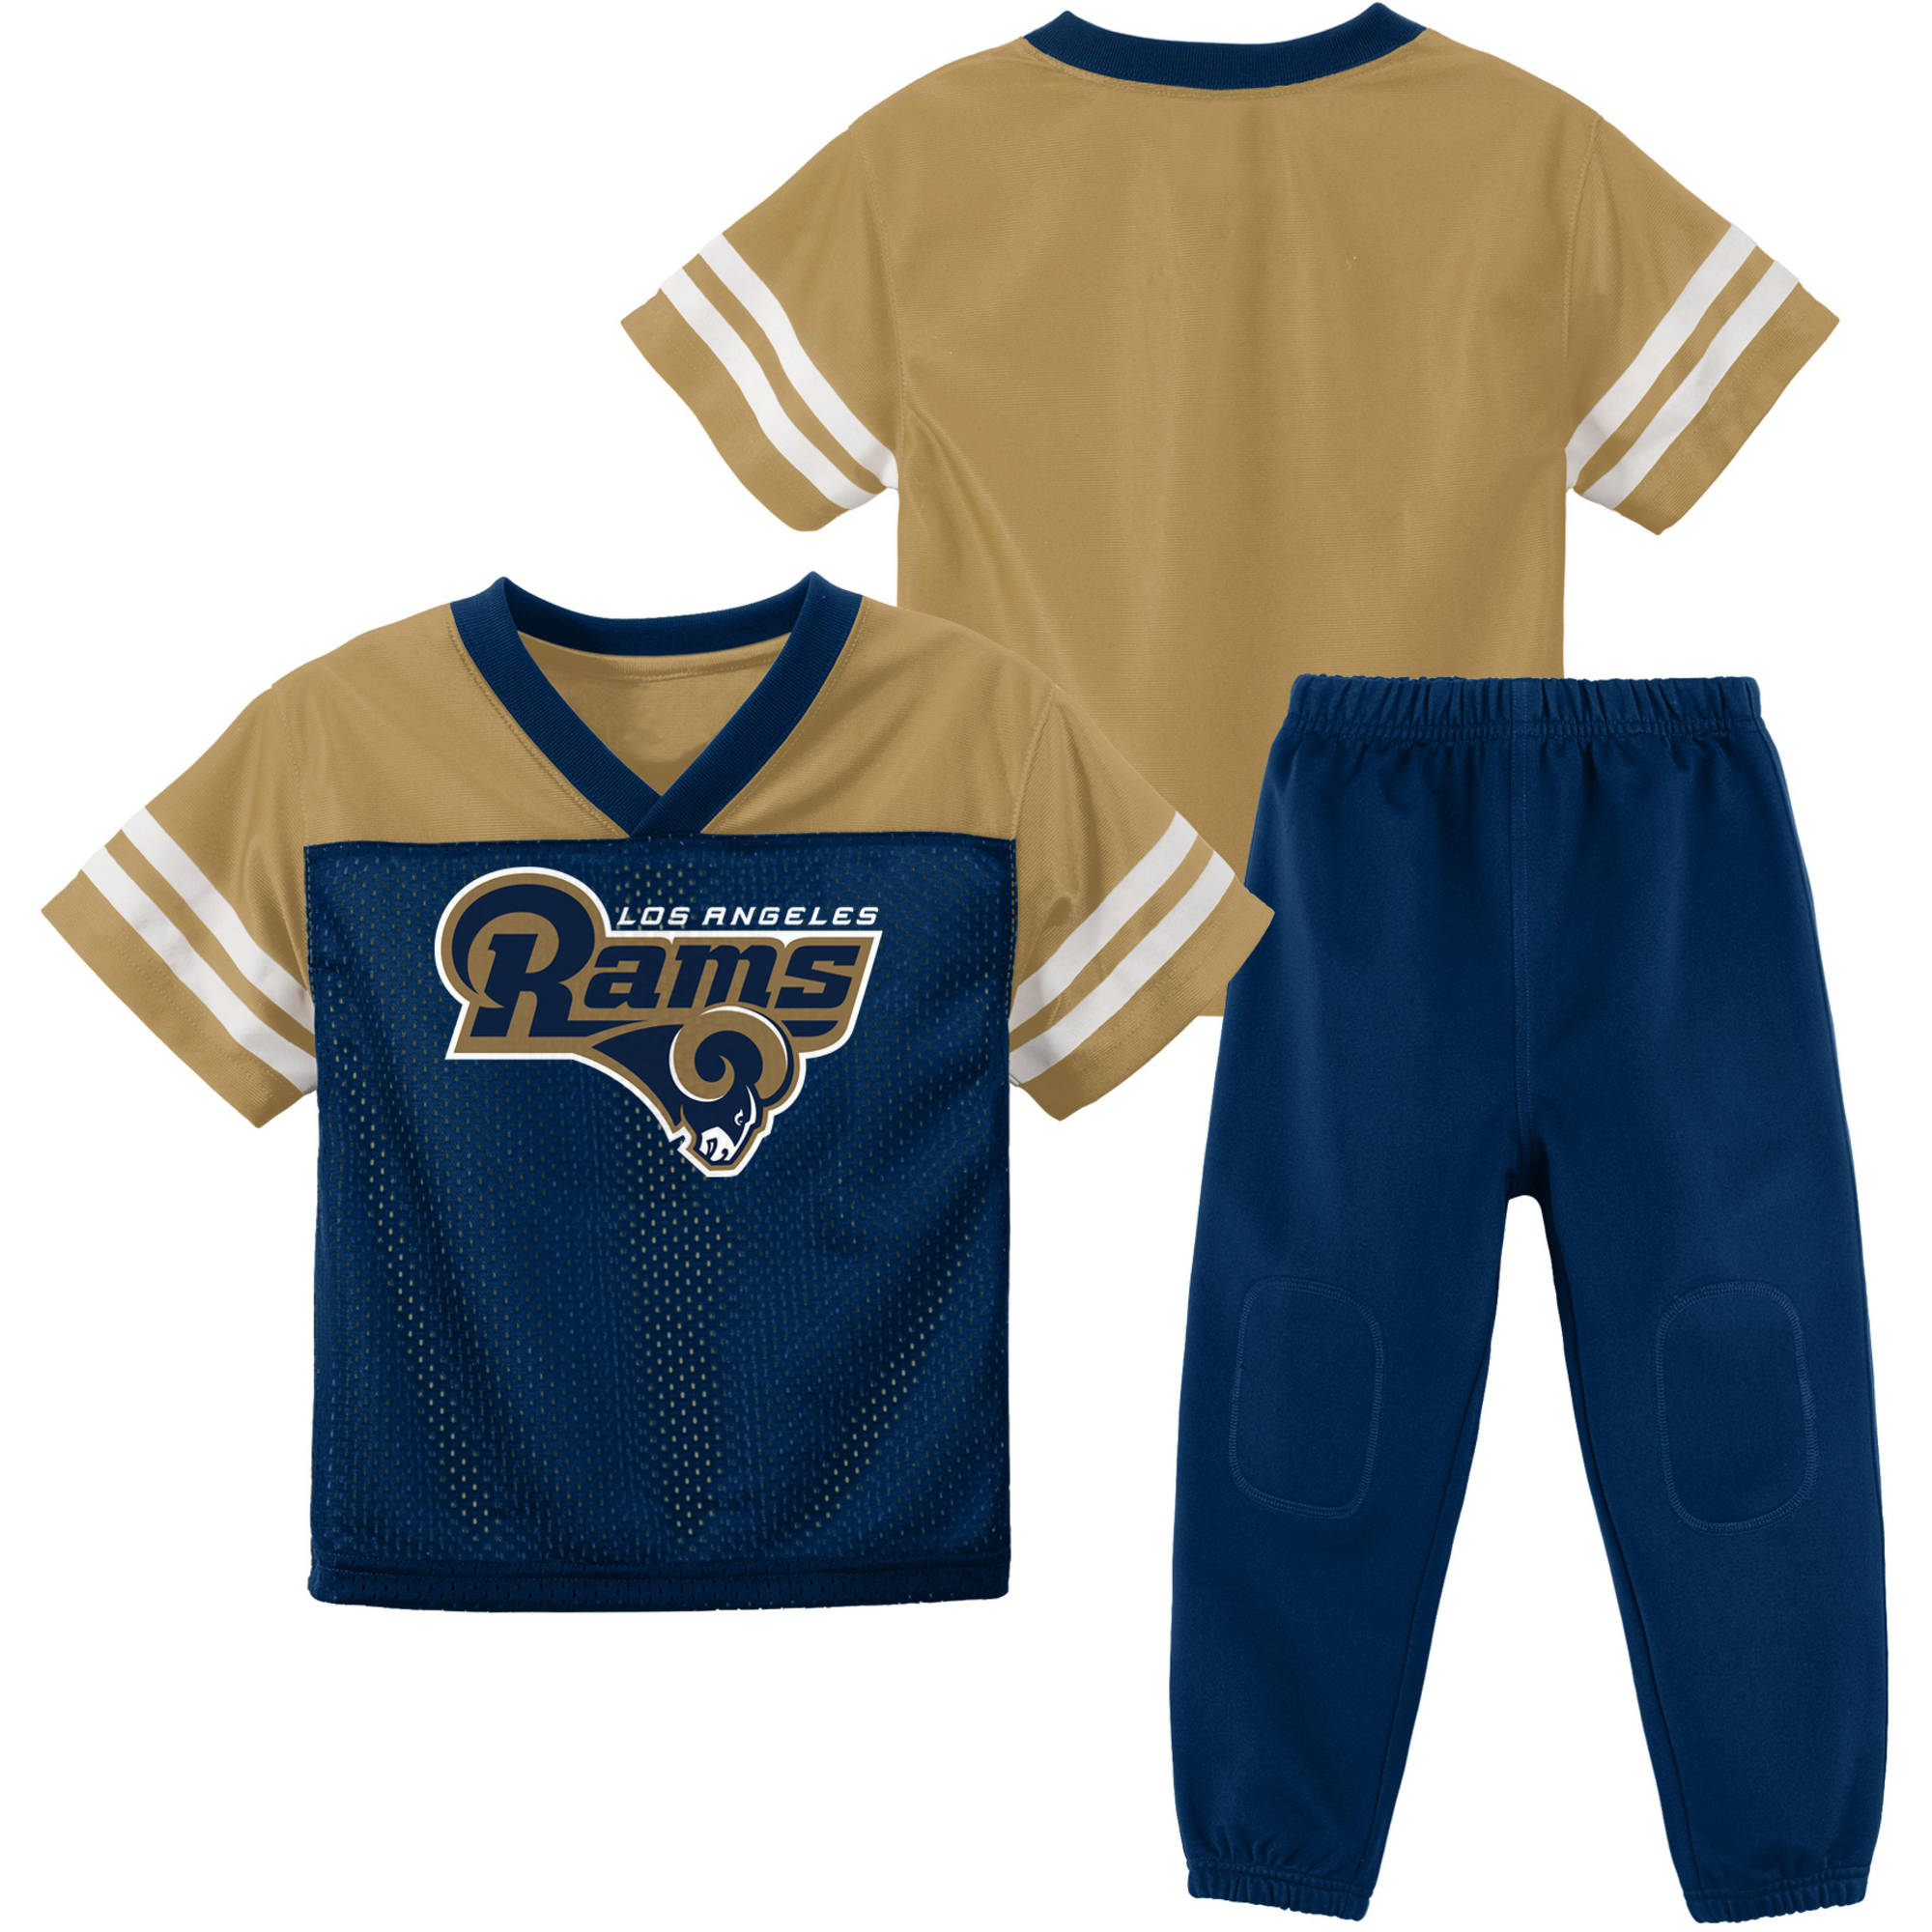 NFL Los Angeles Rams Toddler Short Sleeve Top and Pant Set